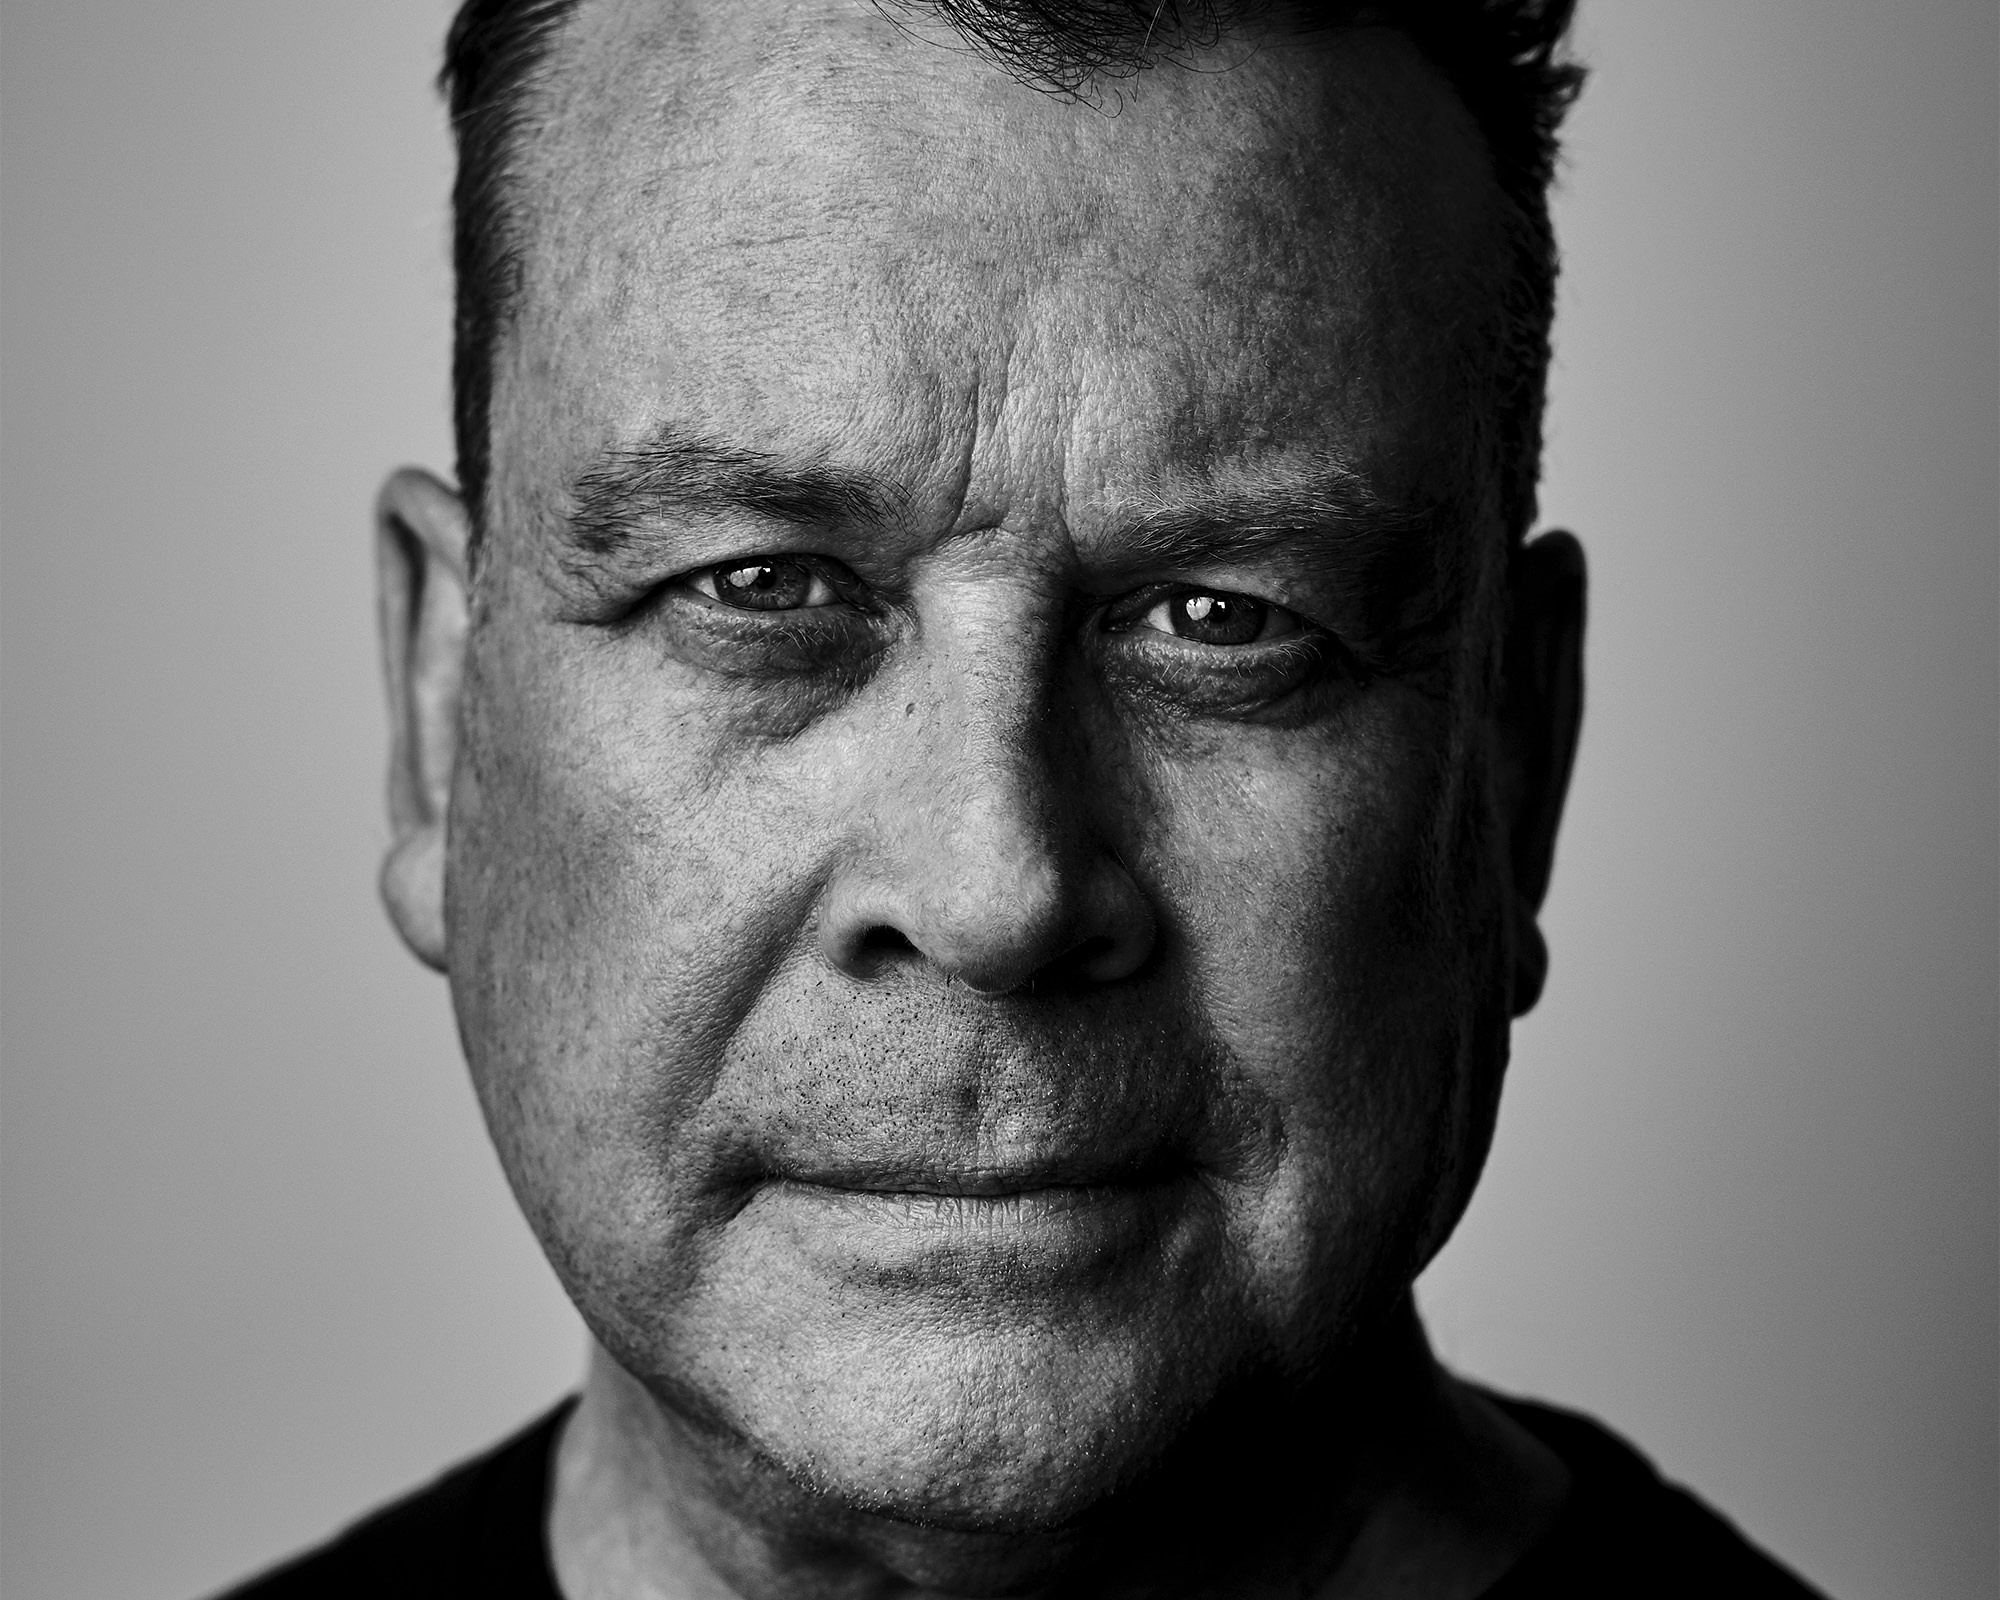 in-studio business headshot of a freelance writer and film producer